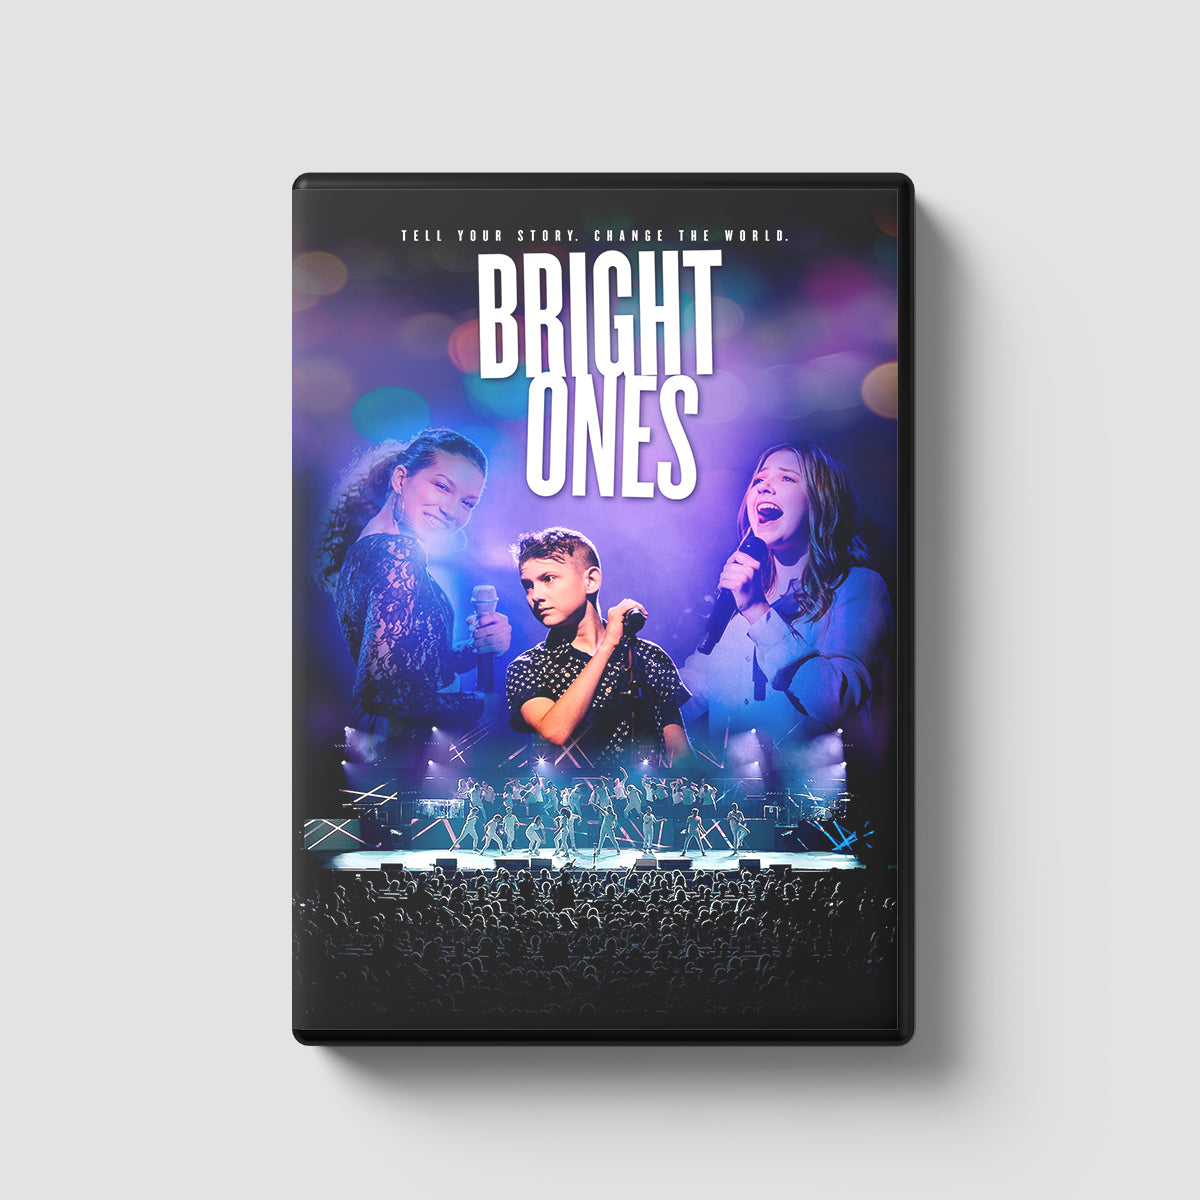 Bright Ones (Motion Picture)